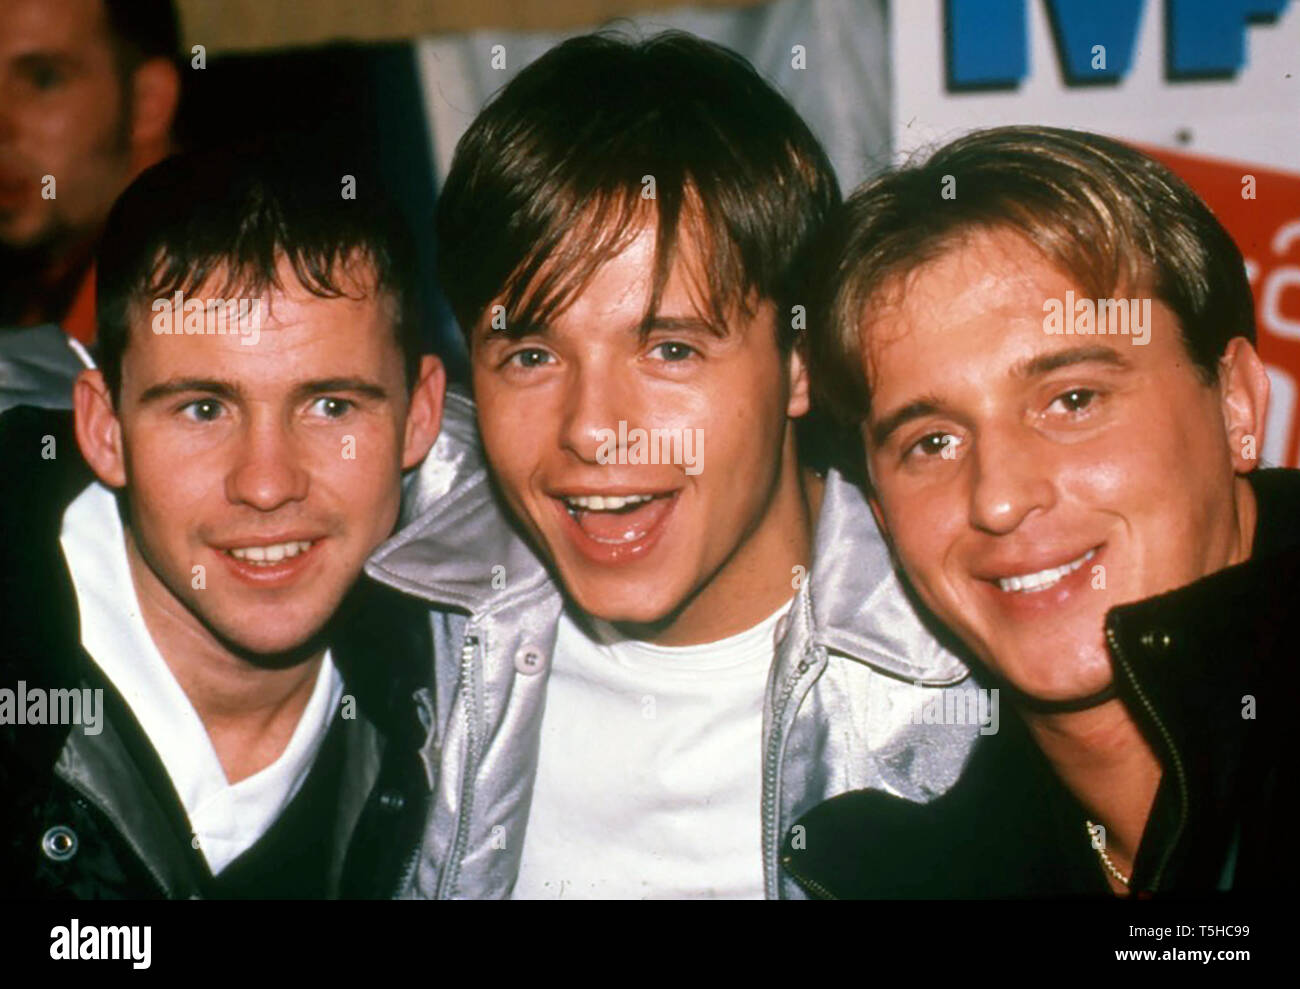 911 English pop group in April 1997 - Stock Image